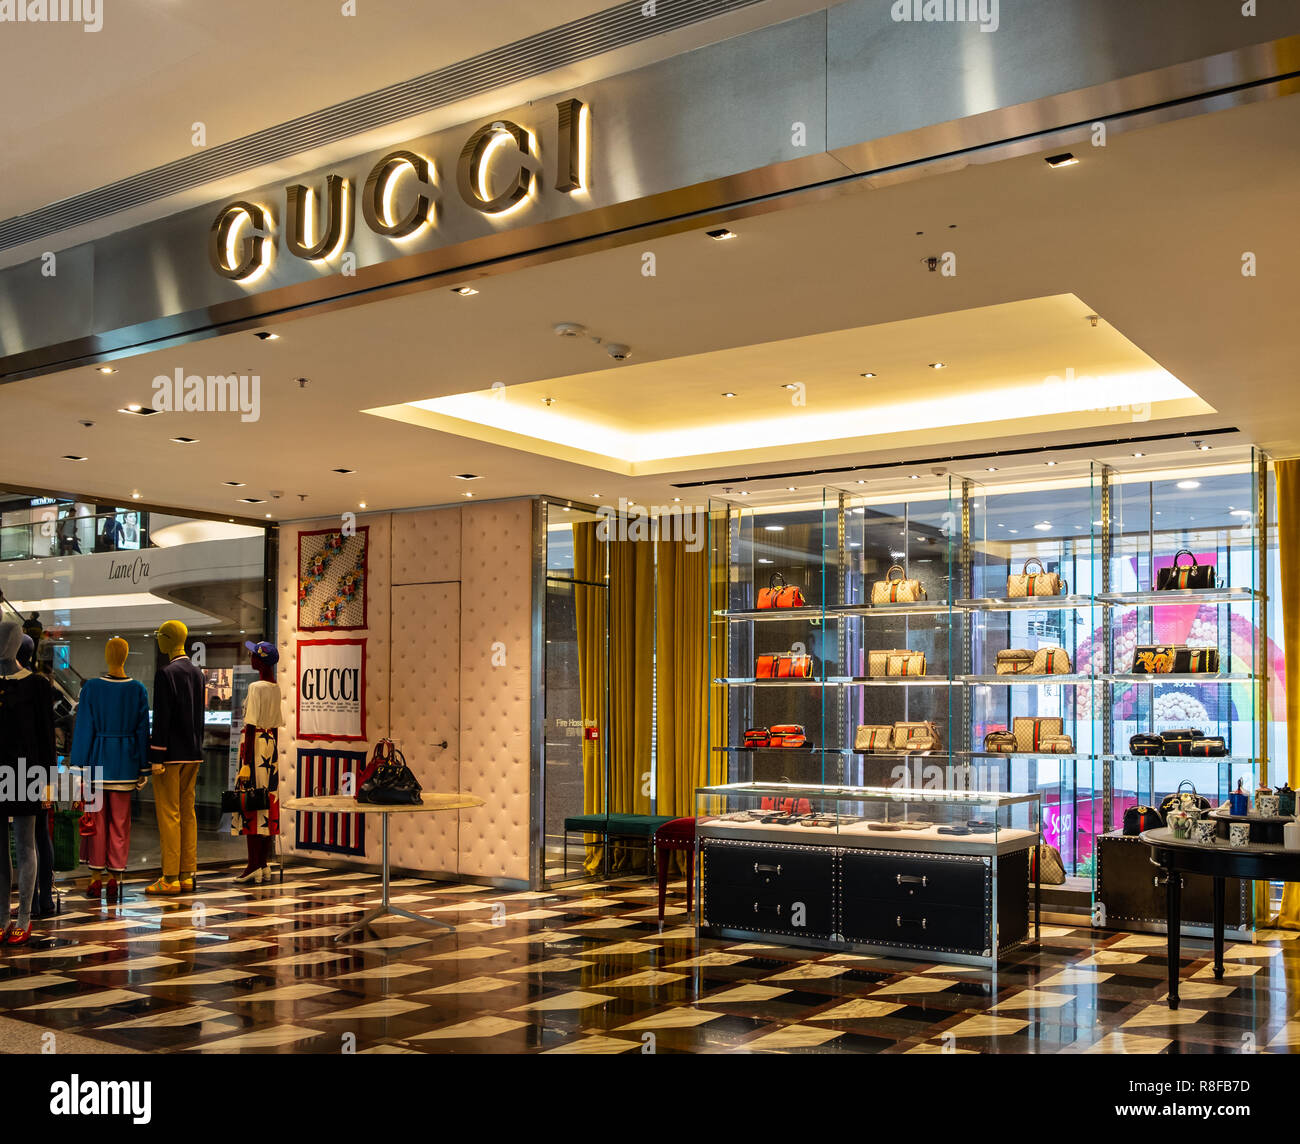 fe9f9eb05 Gucci Sign Stock Photos   Gucci Sign Stock Images - Alamy